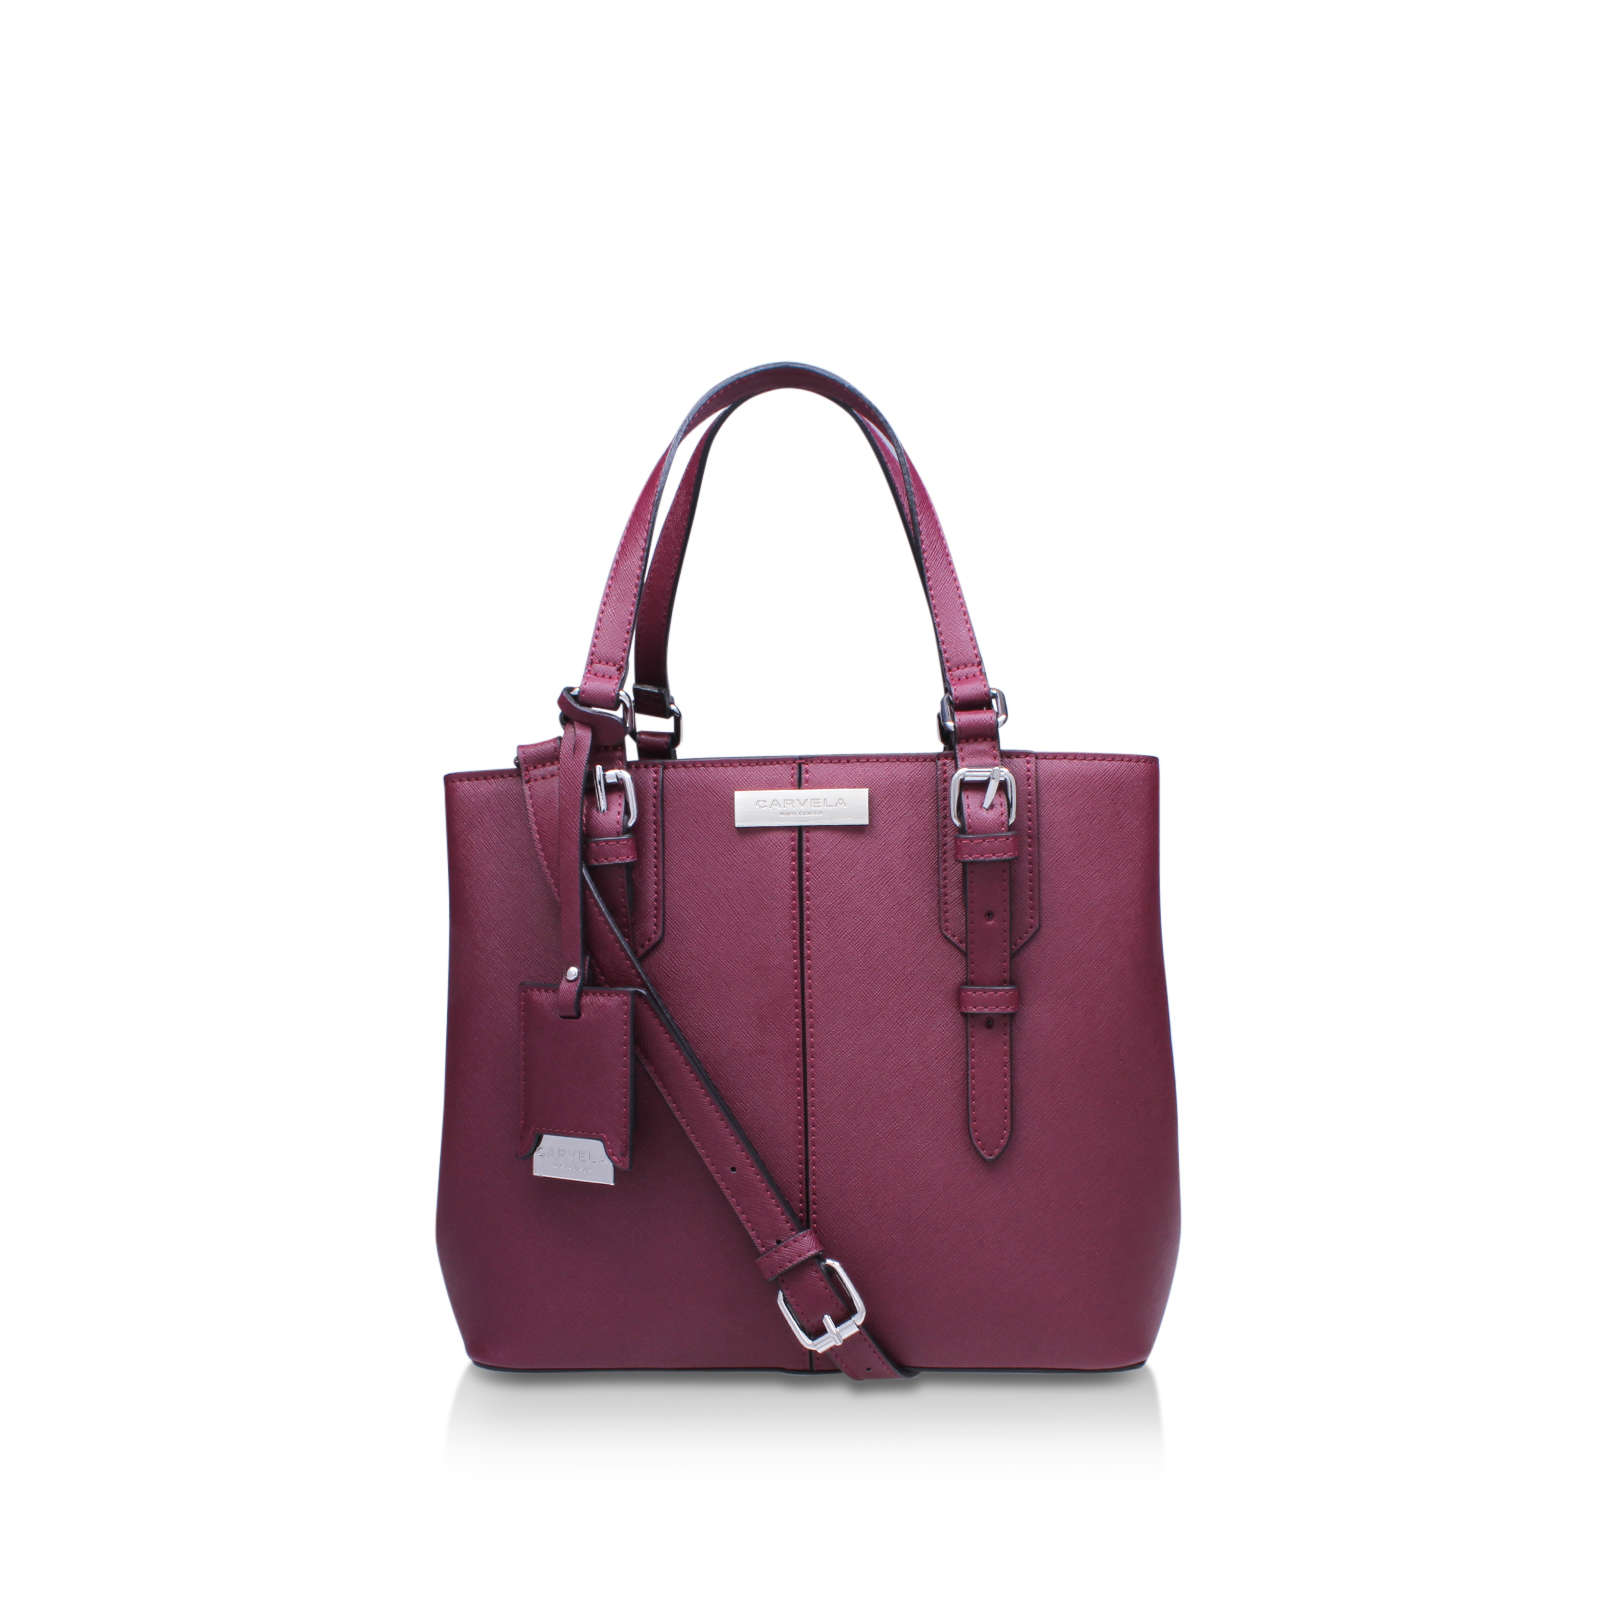 Michael Kors Handbags: Find totes, satchels, and more from migom-zaim.ga Your Online Clothing & Shoes Store! Get 5% in rewards with Club O!